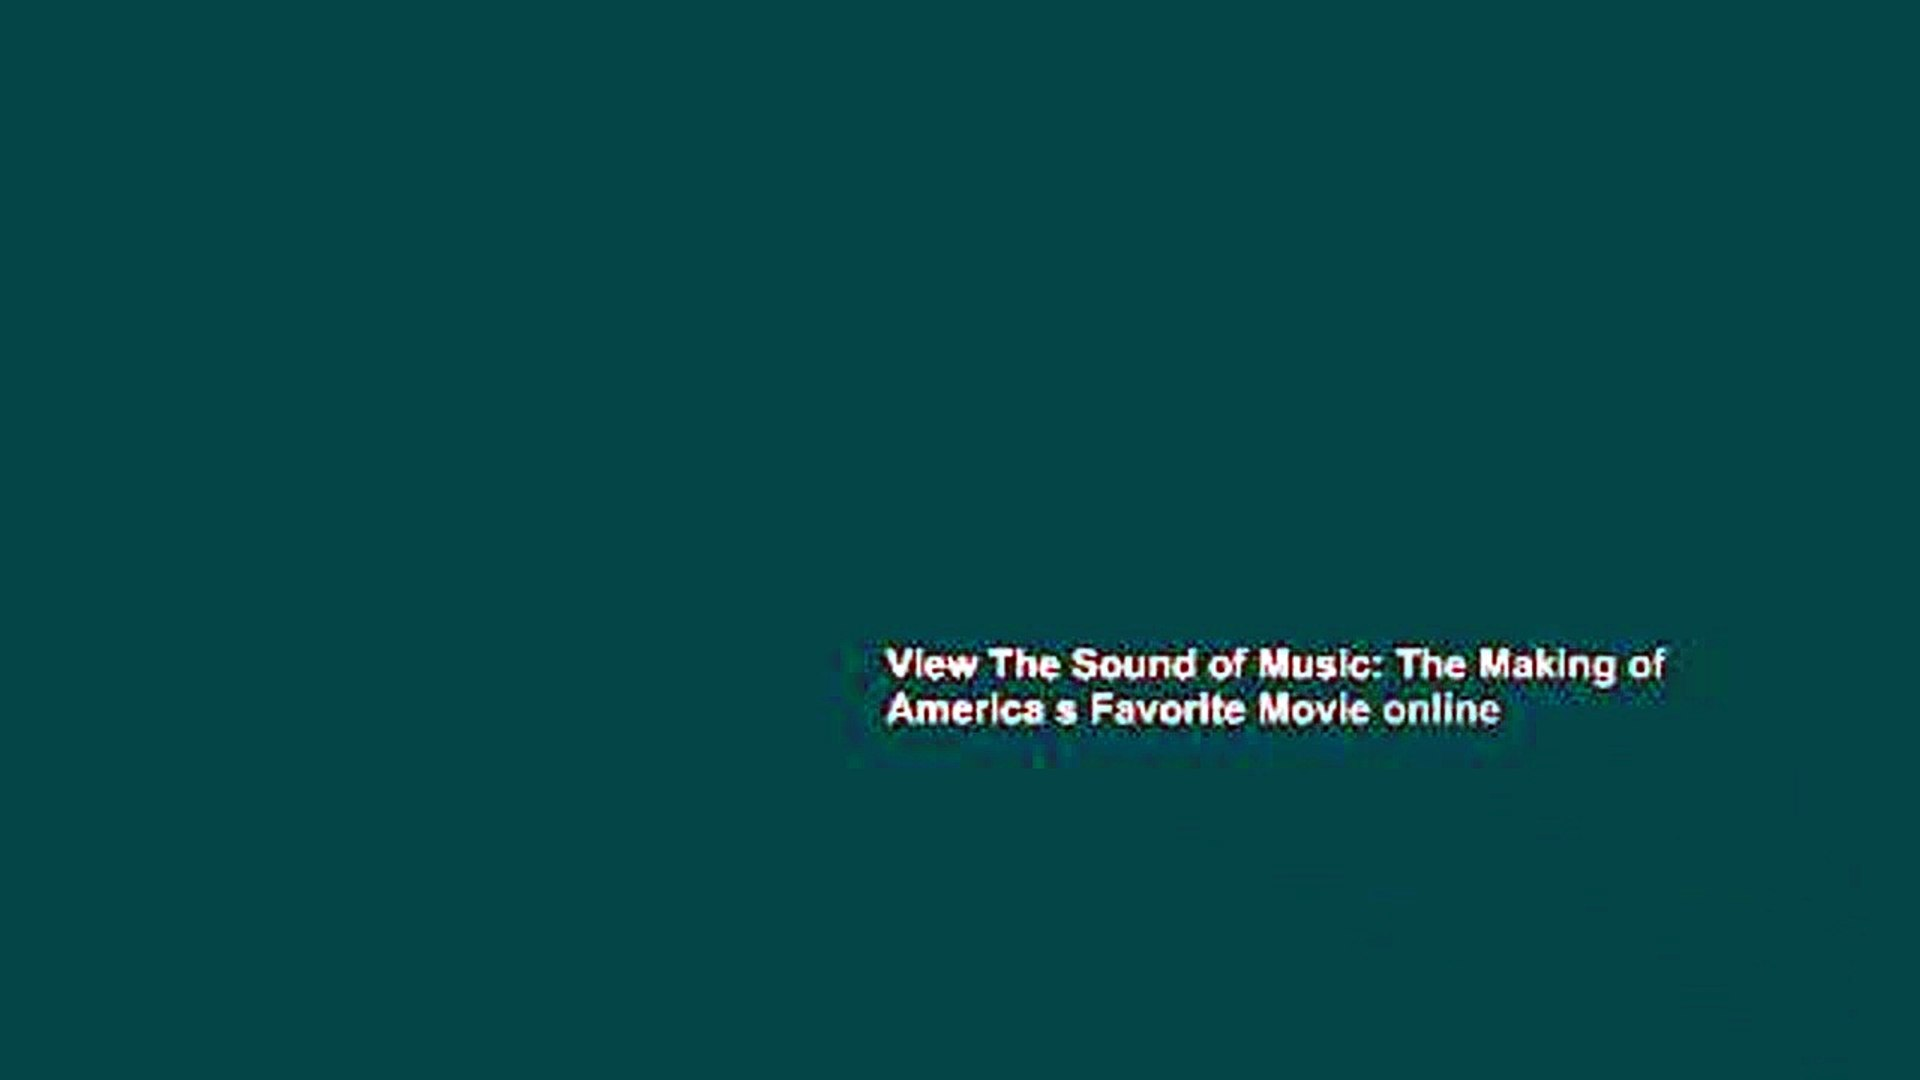 View The Sound of Music: The Making of America s Favorite Movie online